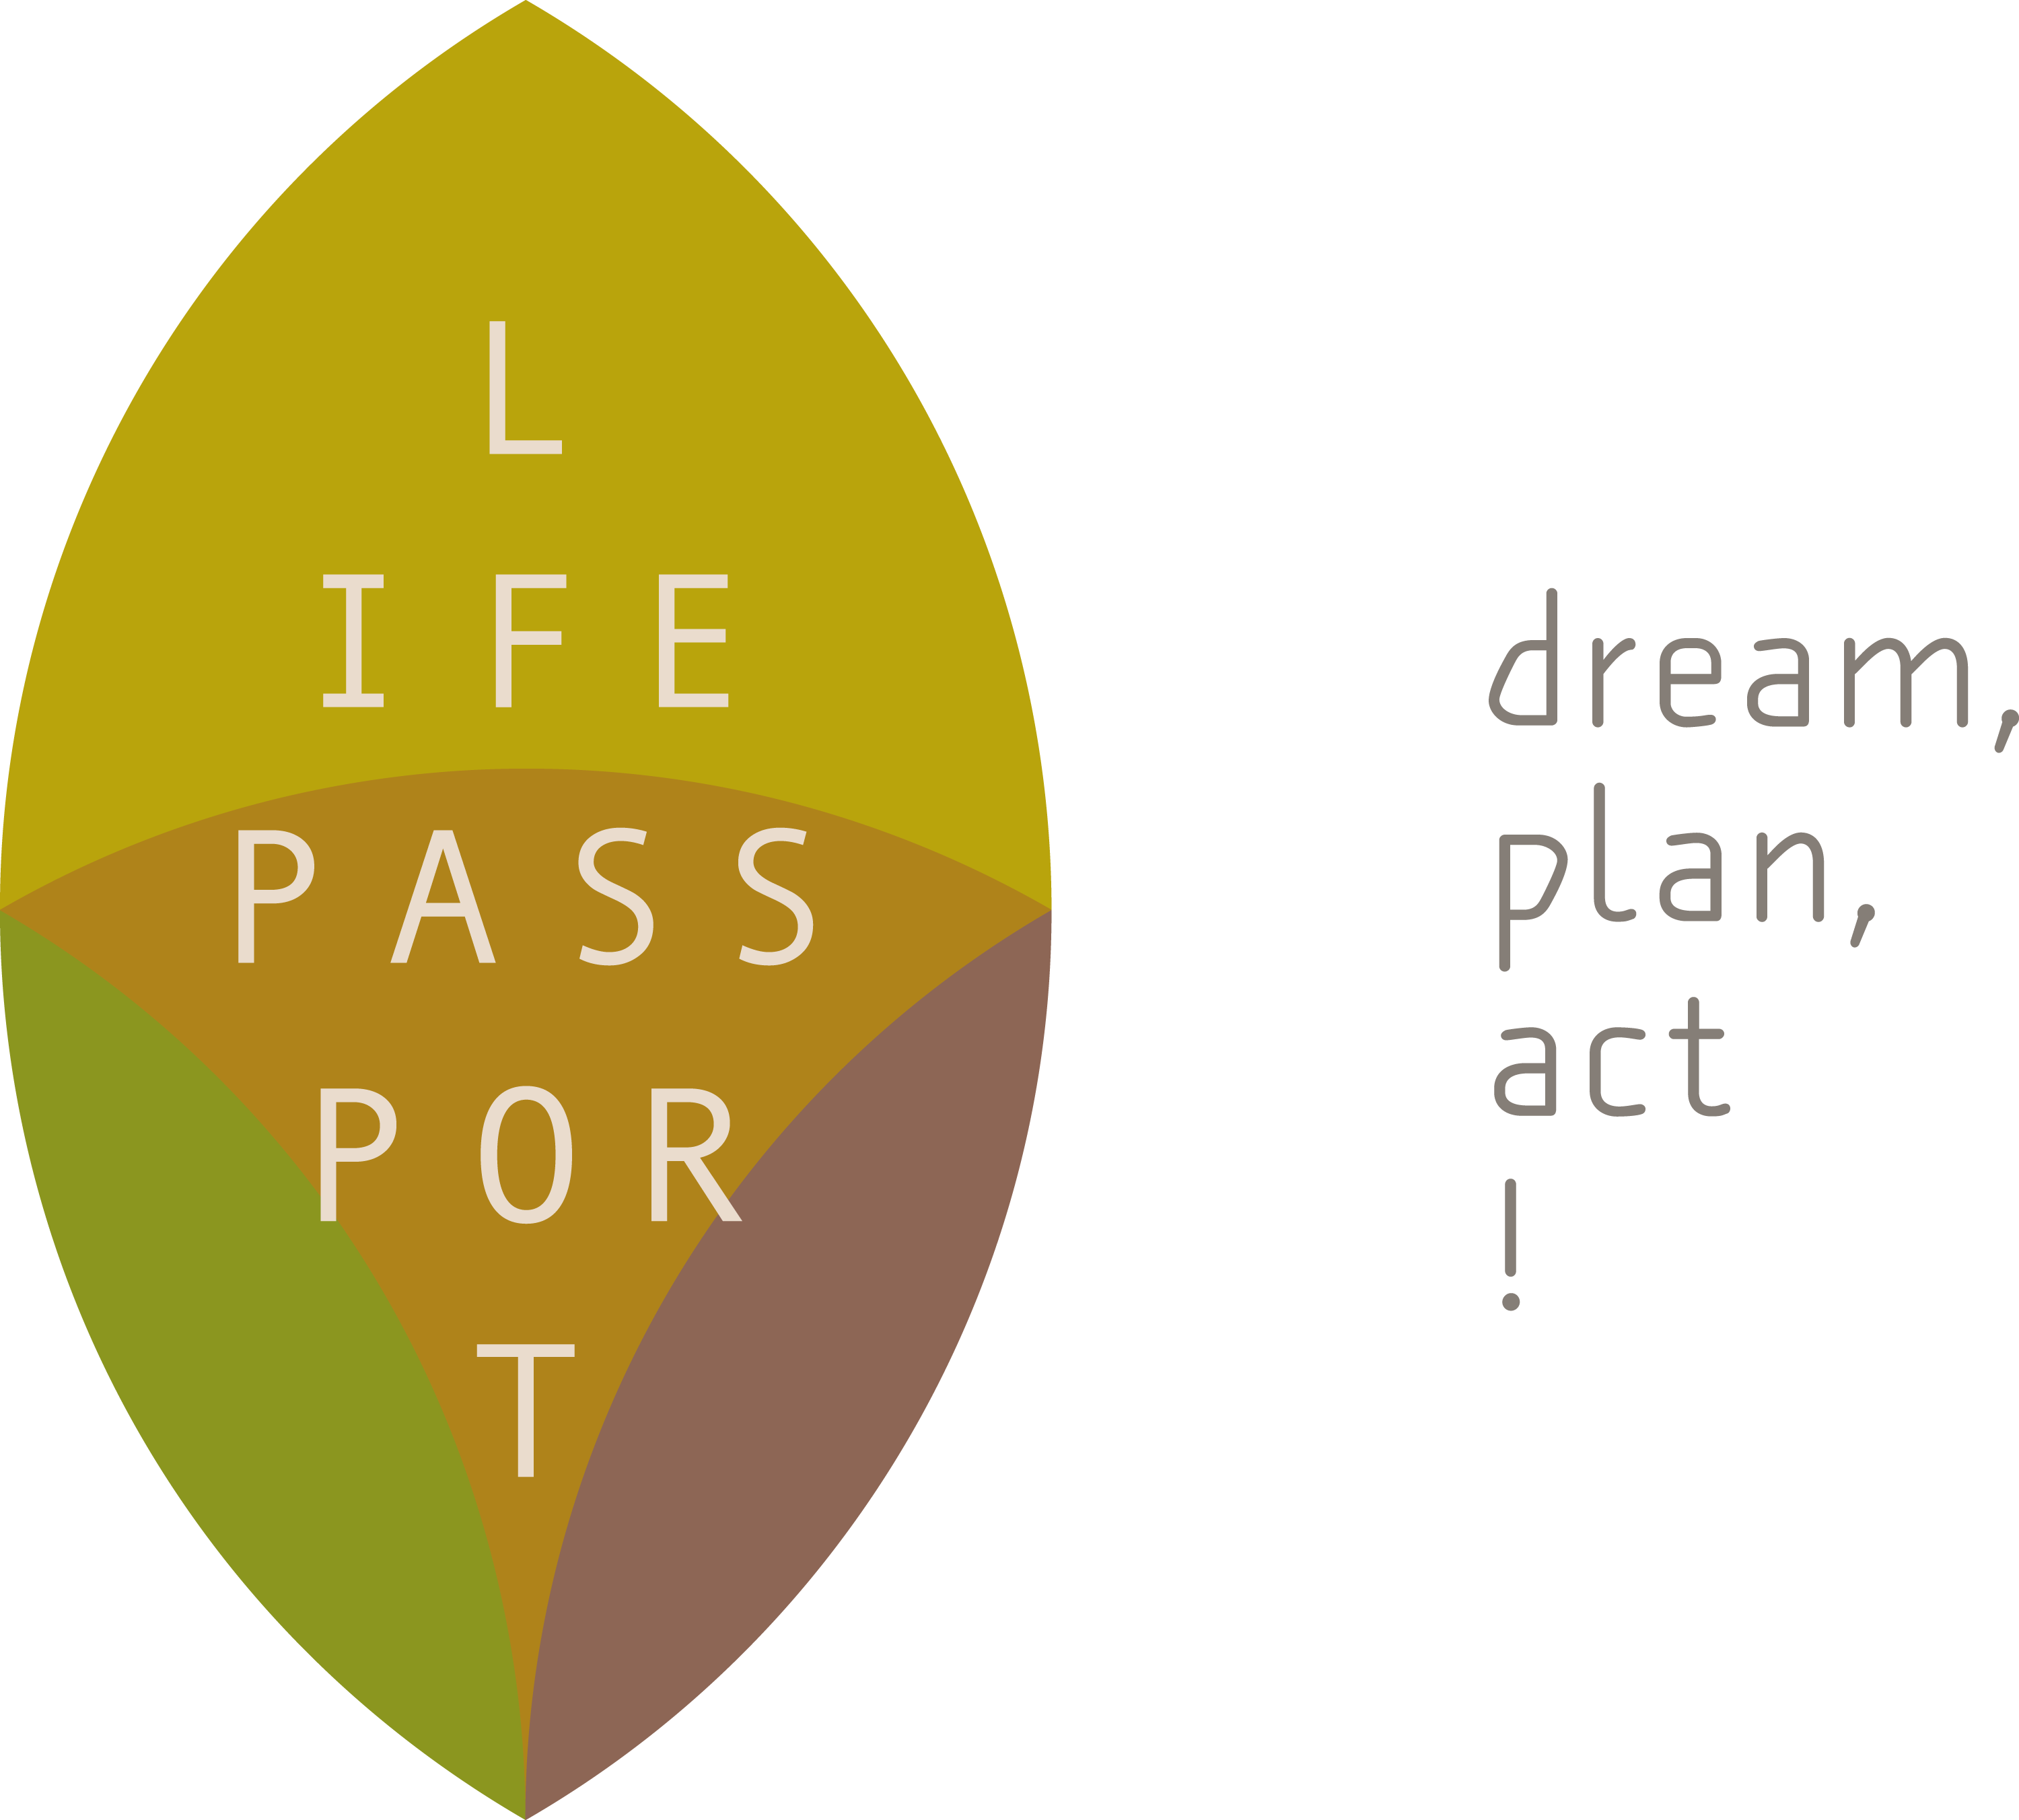 Lifepassport